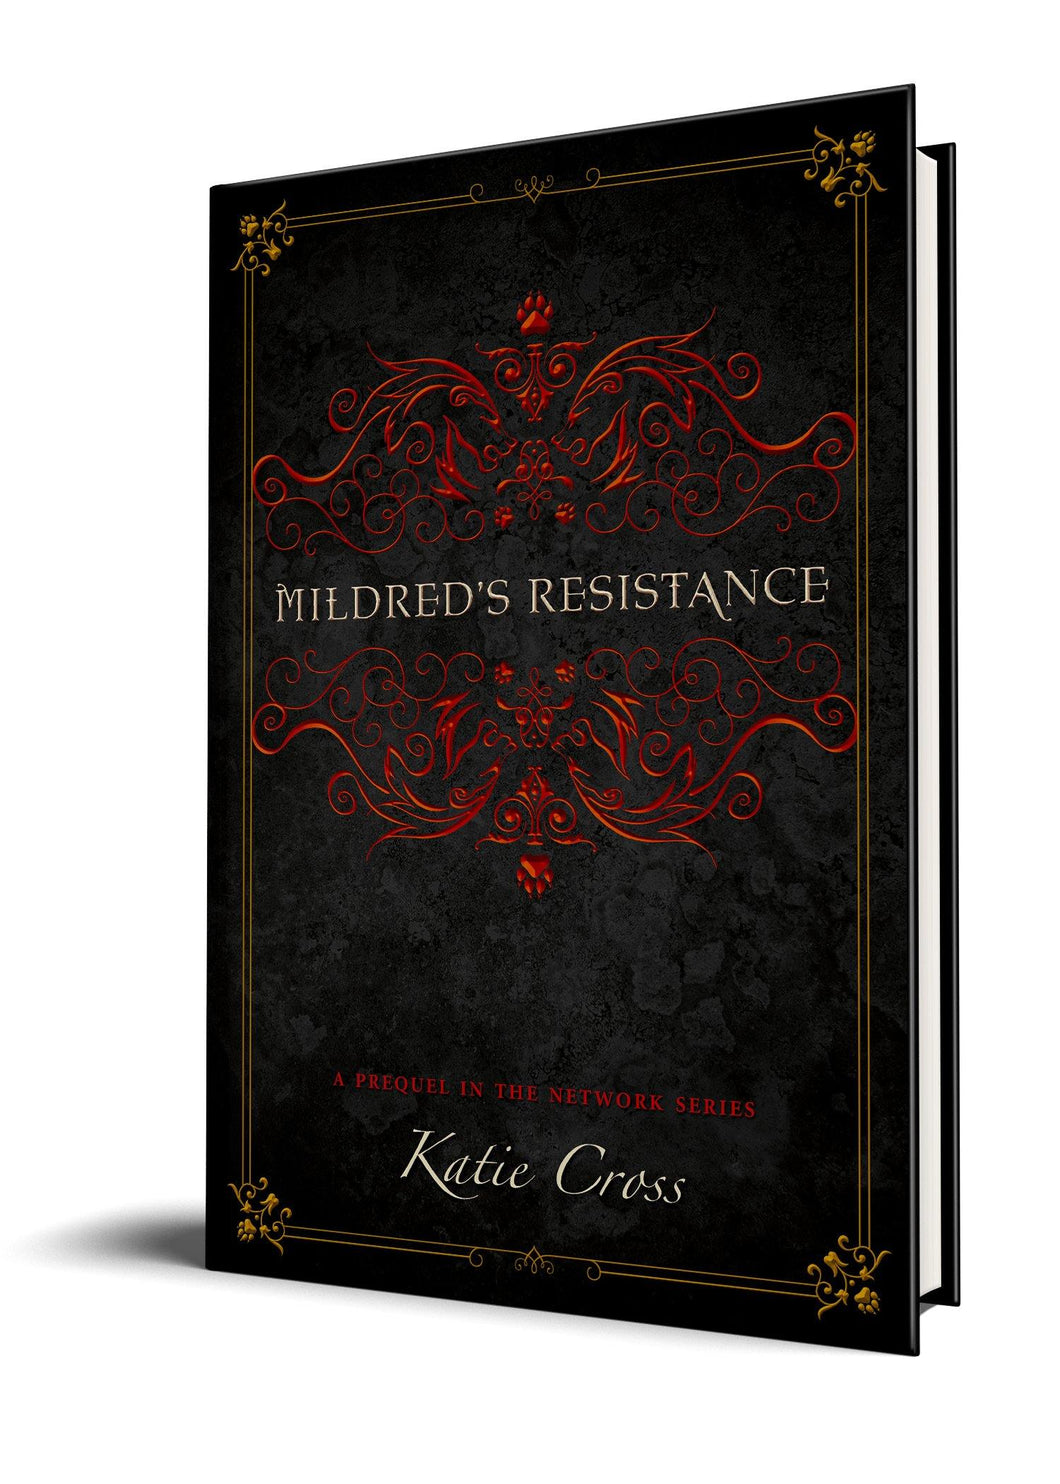 Mildred's Resistance (Paperback Edition)